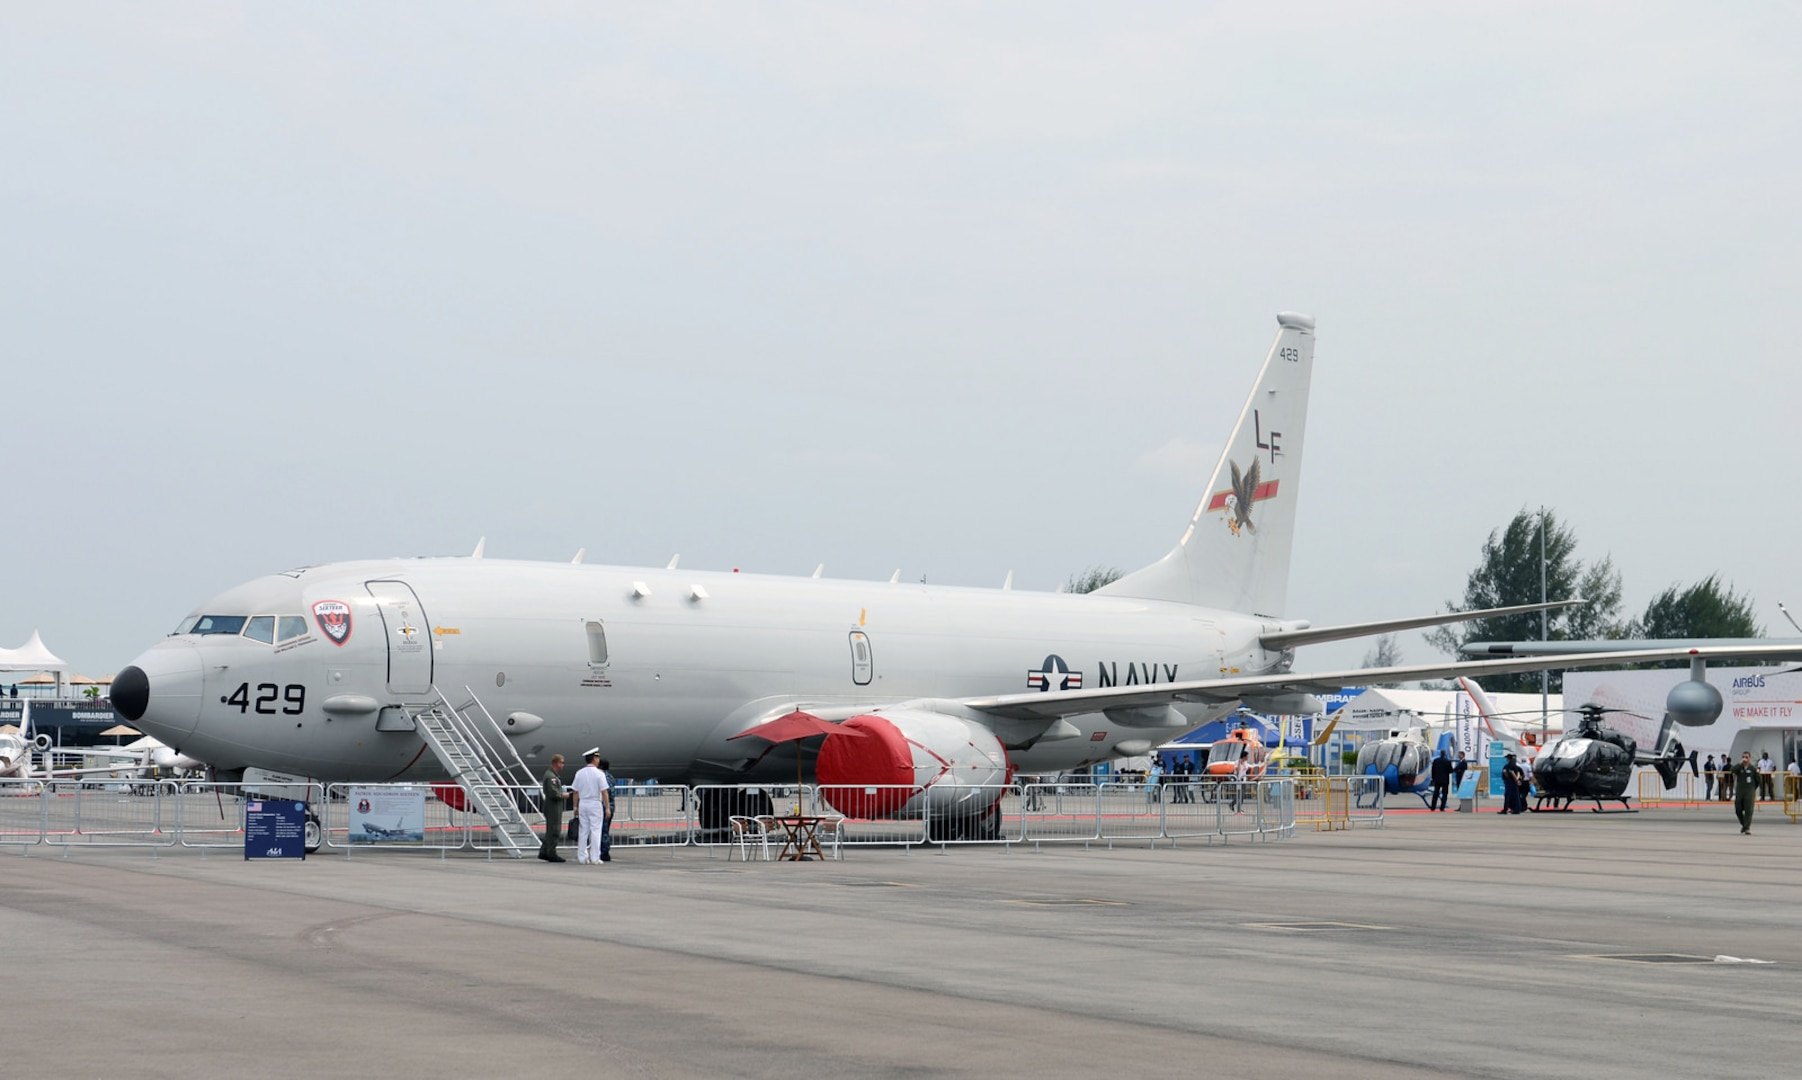 U.S. Navy aircraft participate in Singapore Airshow